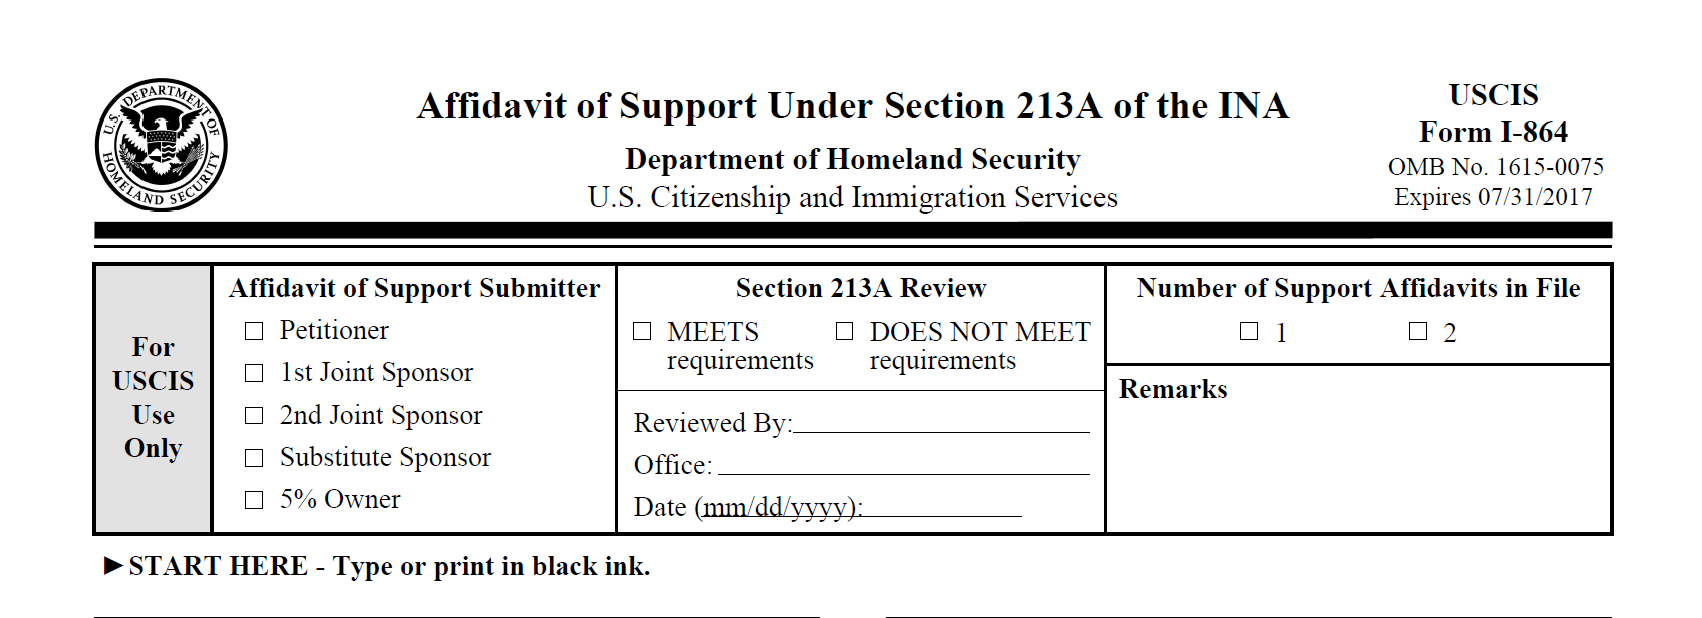 How To Complete The Form I-864